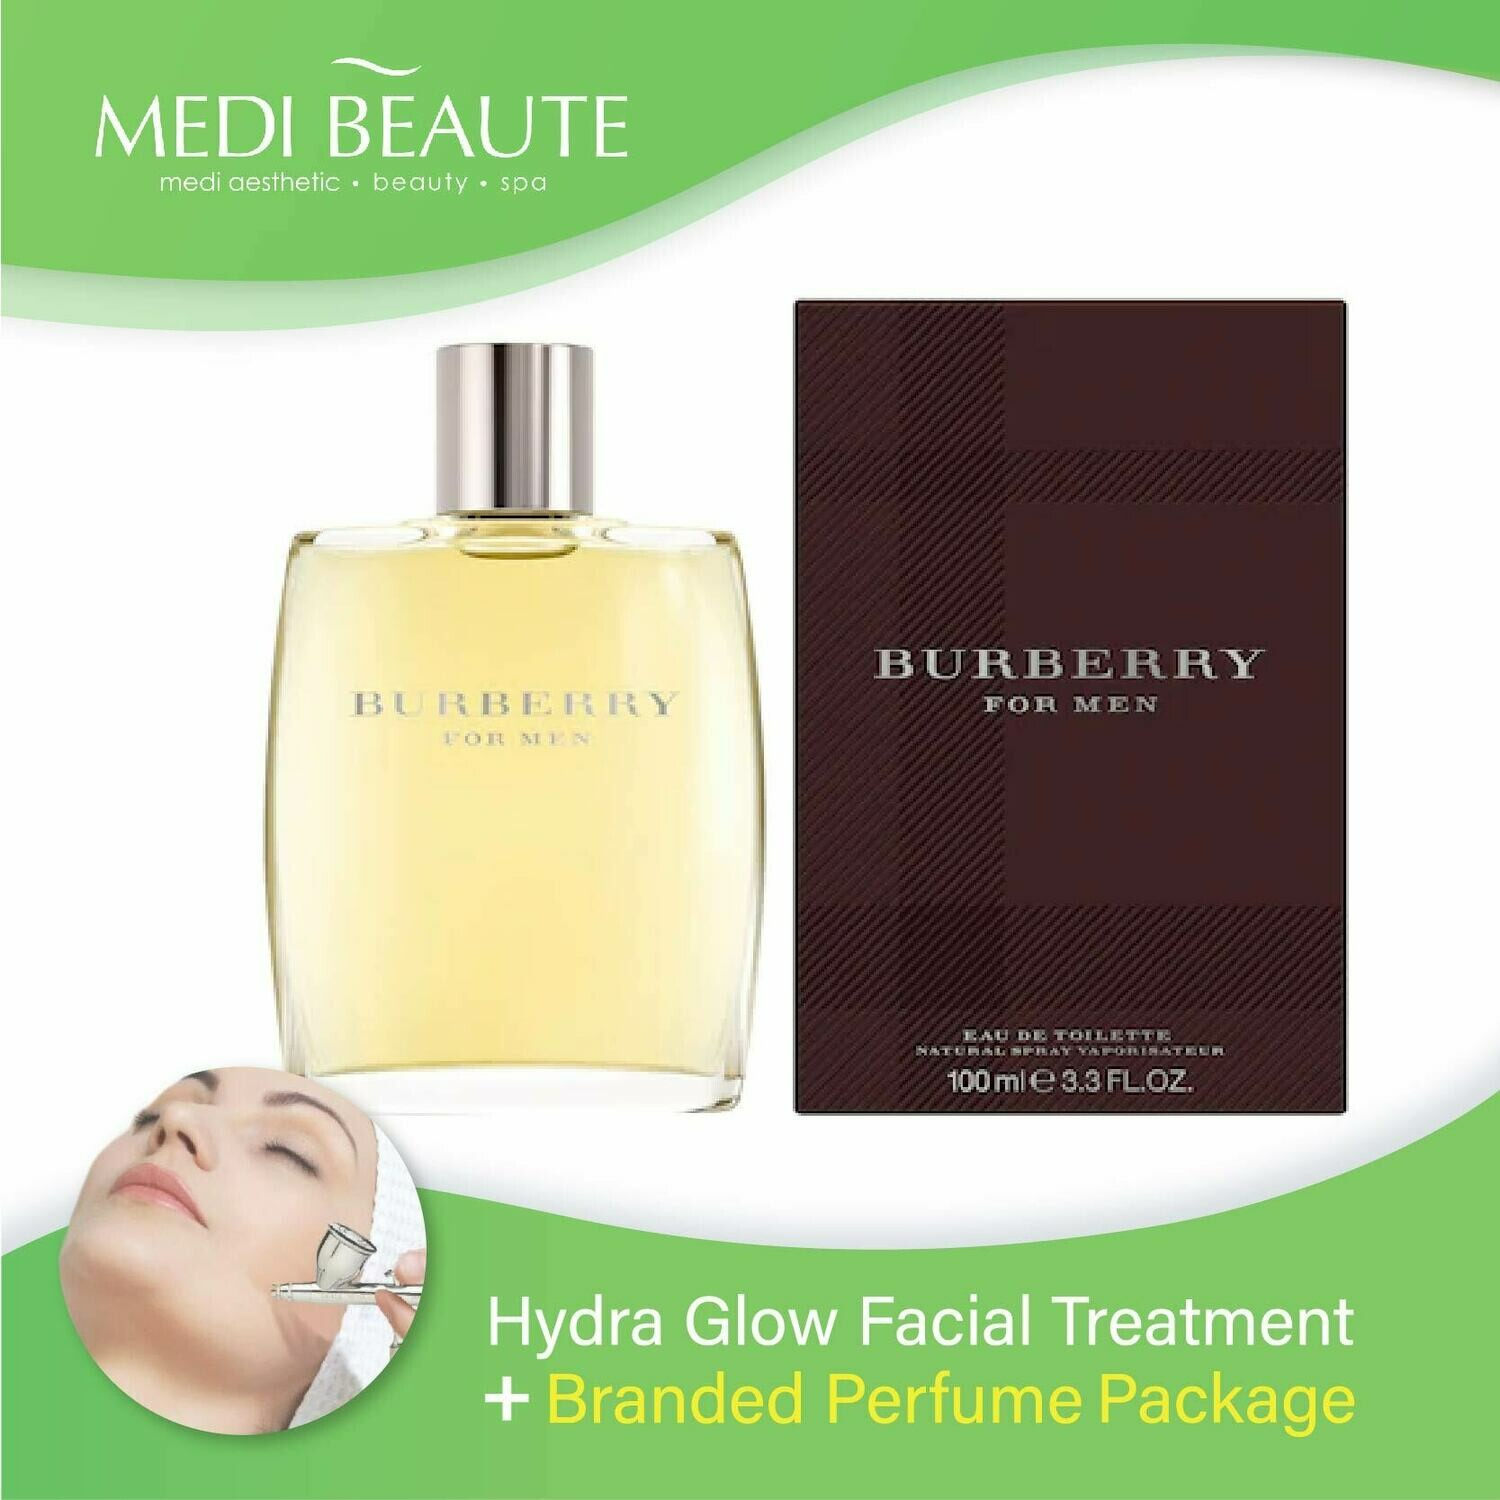 Medi Beaute Hydra Glow Facial Treatment + Branded Perfume ( Burberry Classic Men EDT 100ml) Package